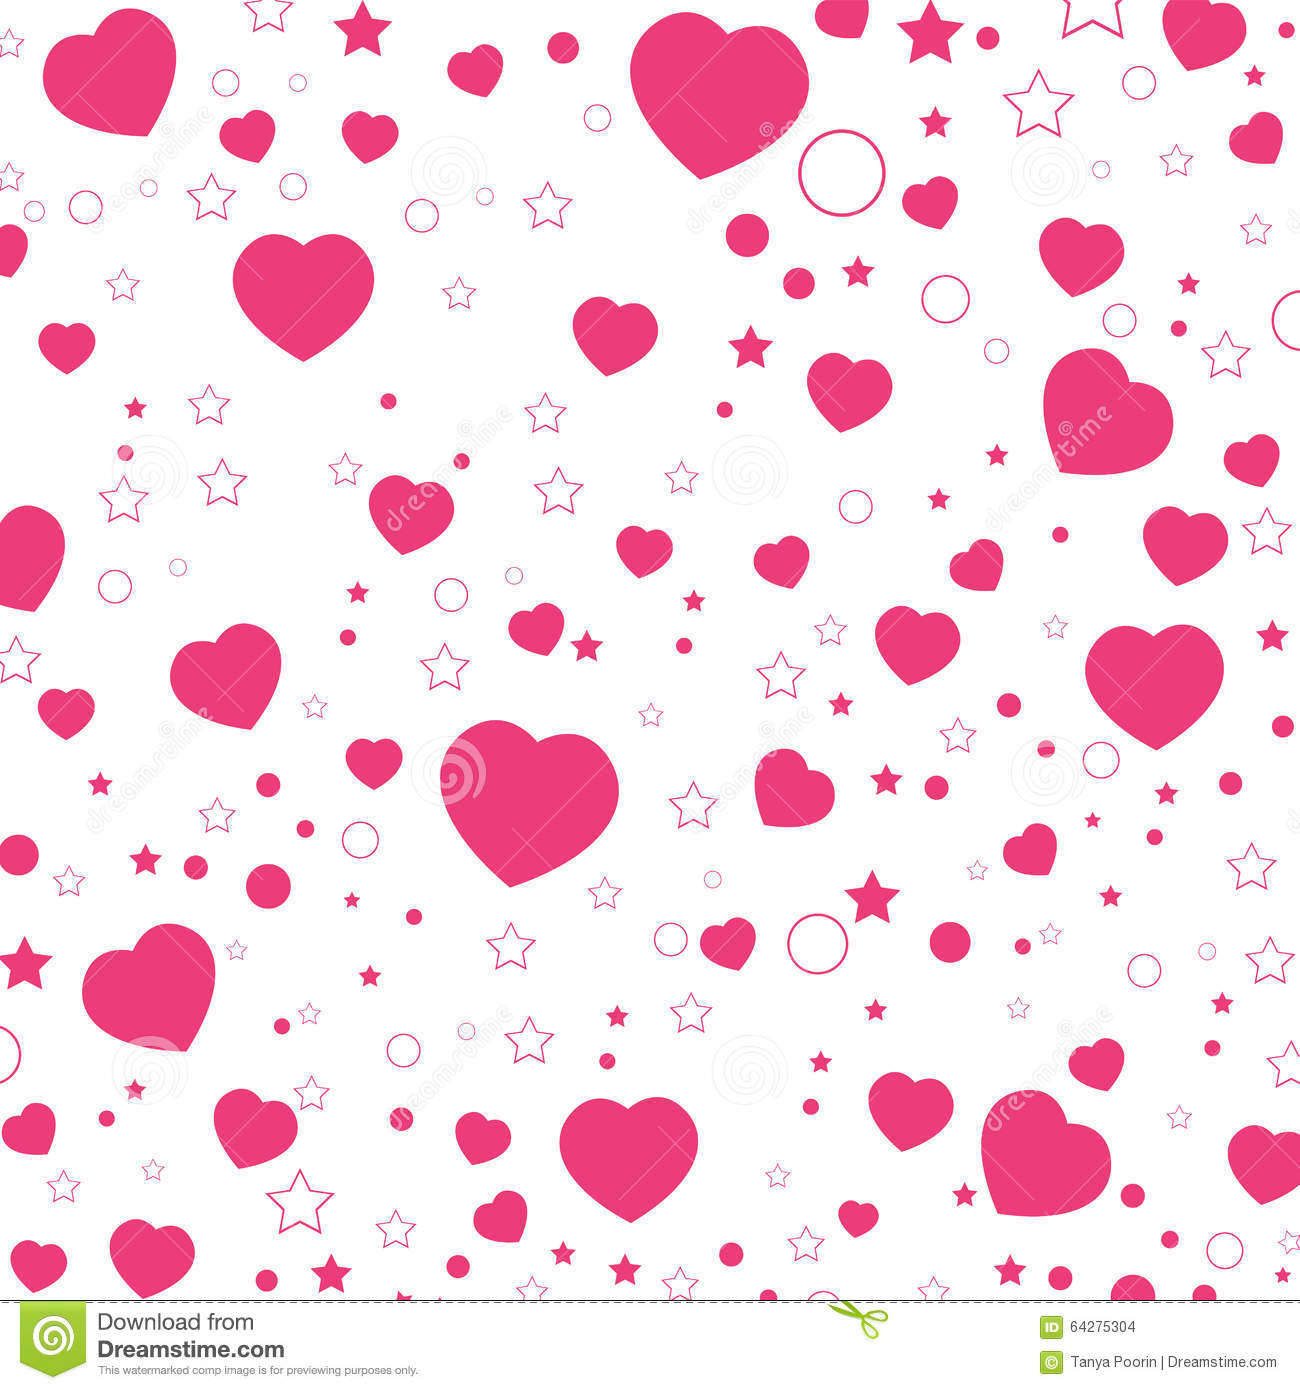 Fall In Love Couples Wallpapers Valentine Day Et Coeur Rose D Isolement Sur Le Fond Blanc